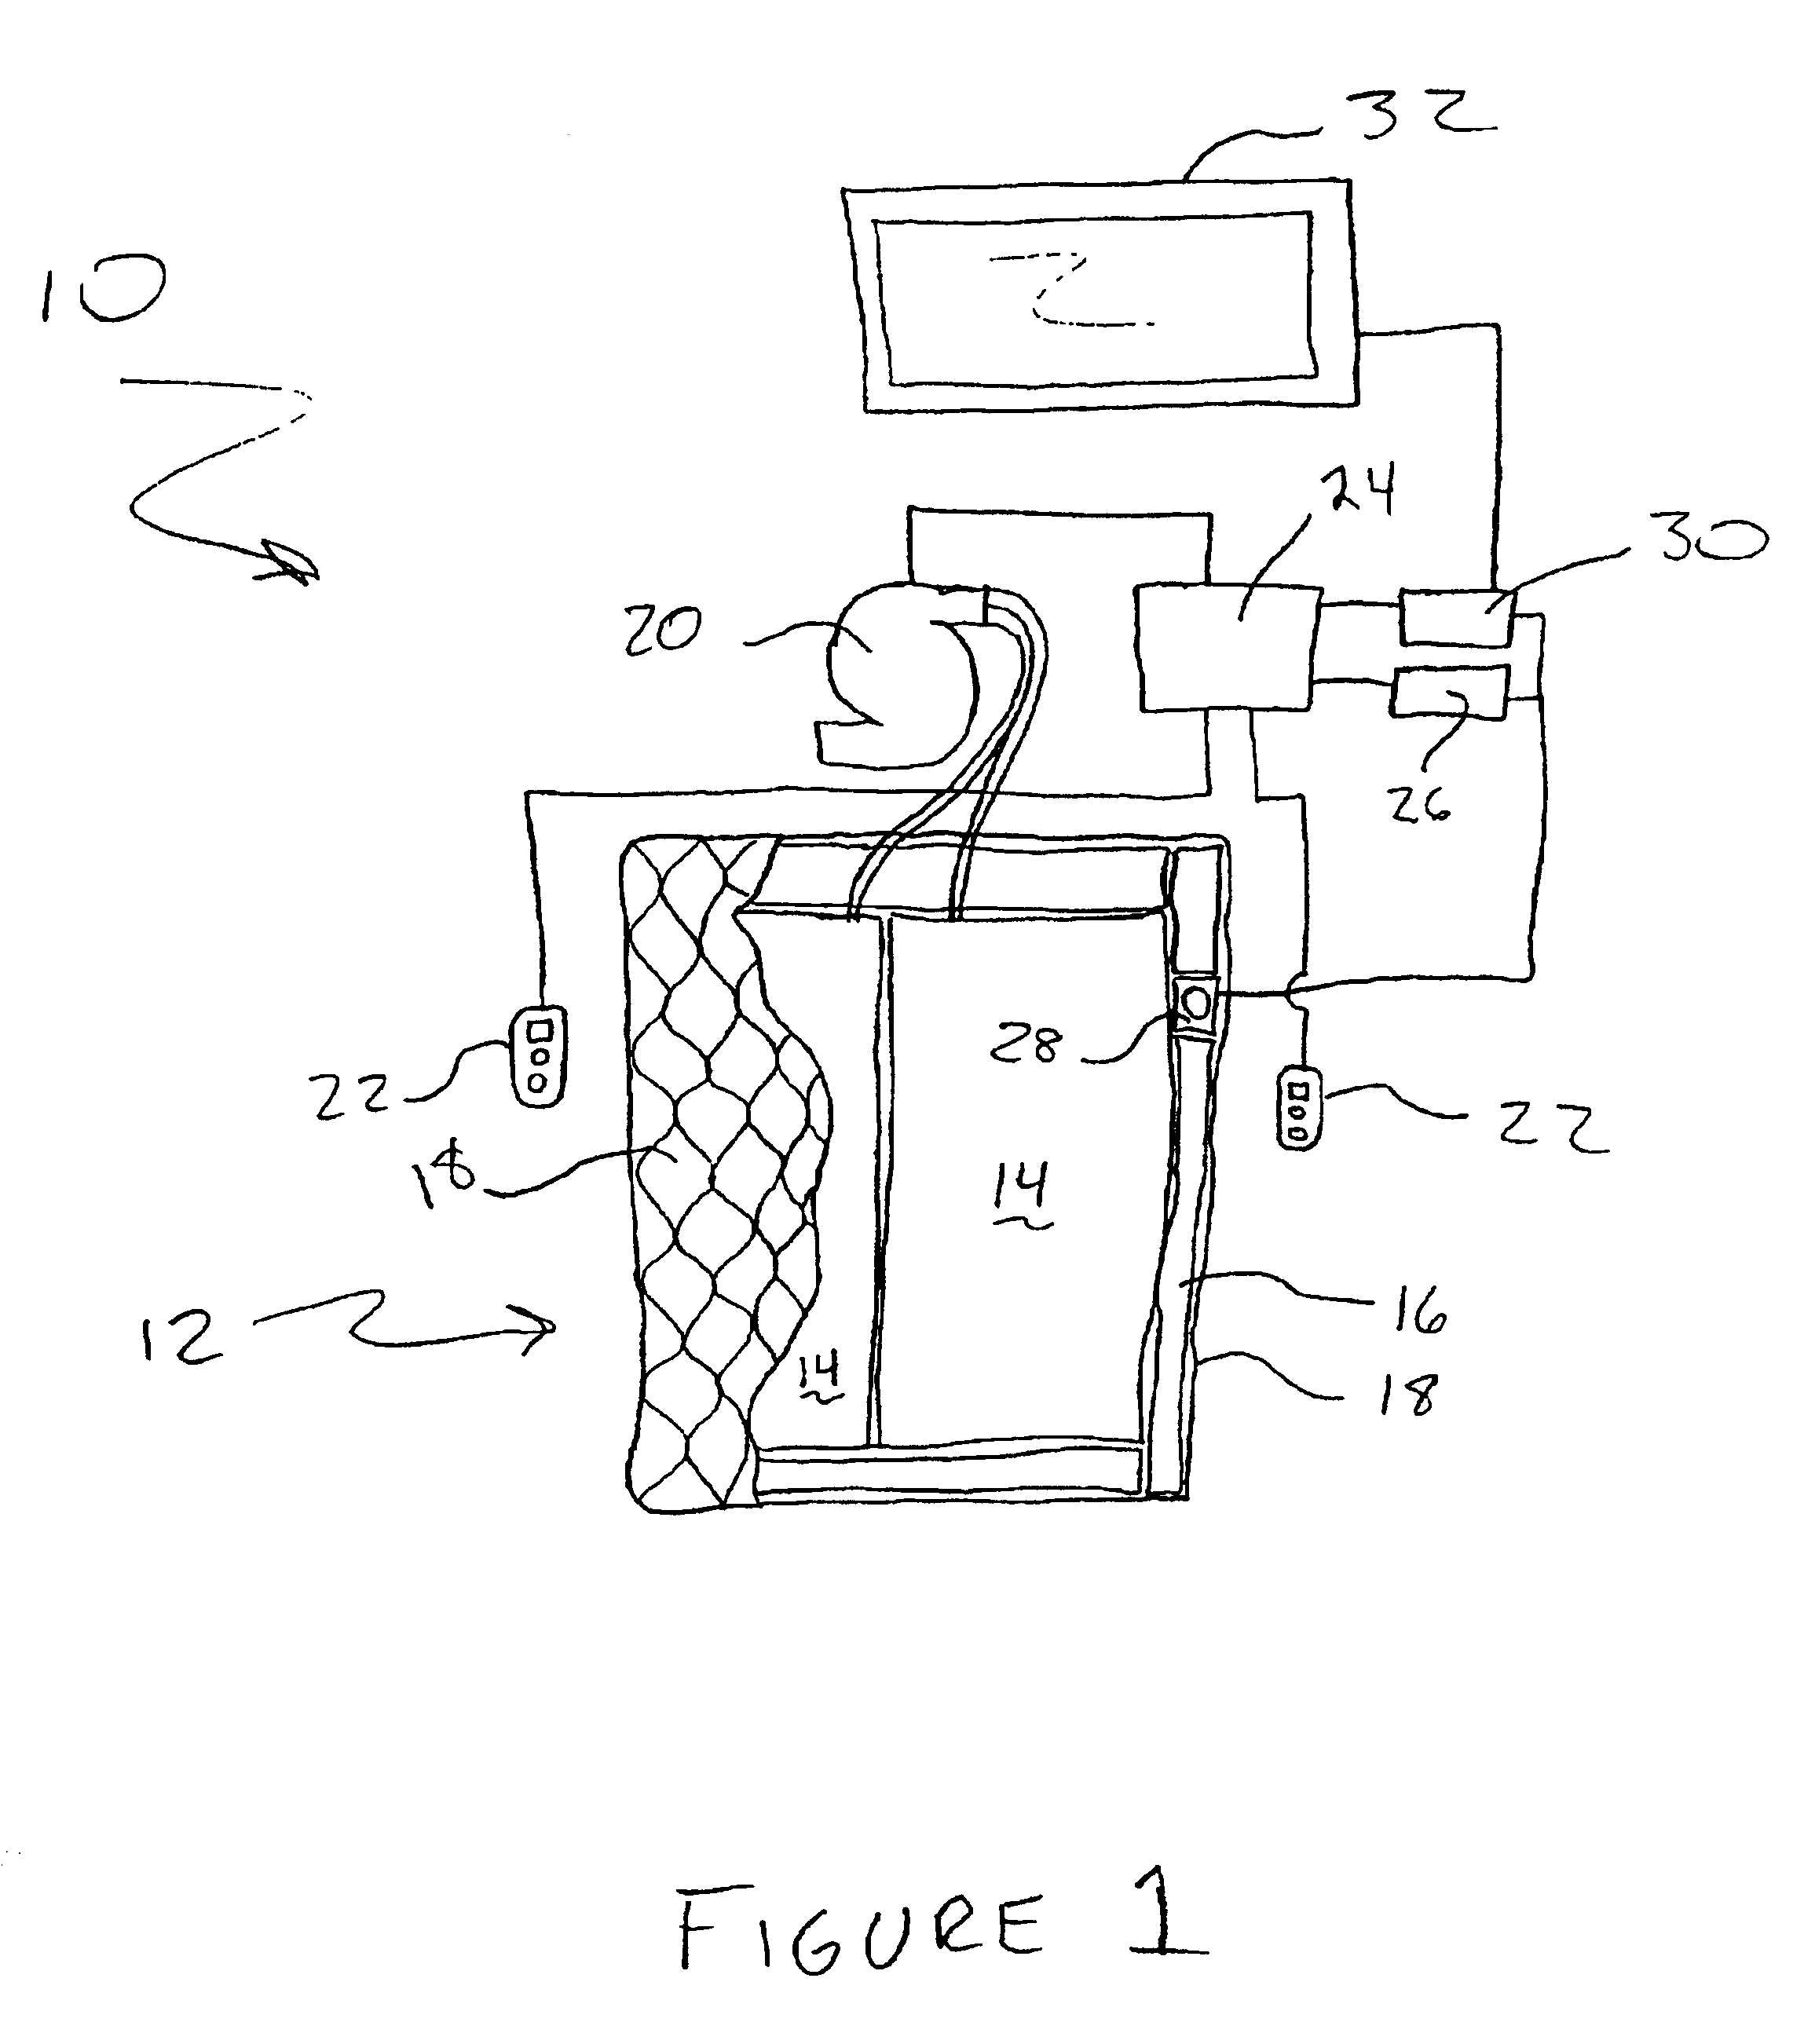 Sleeping bag suit moreover blow up air mattress as well bed inflatable - Patent Drawing